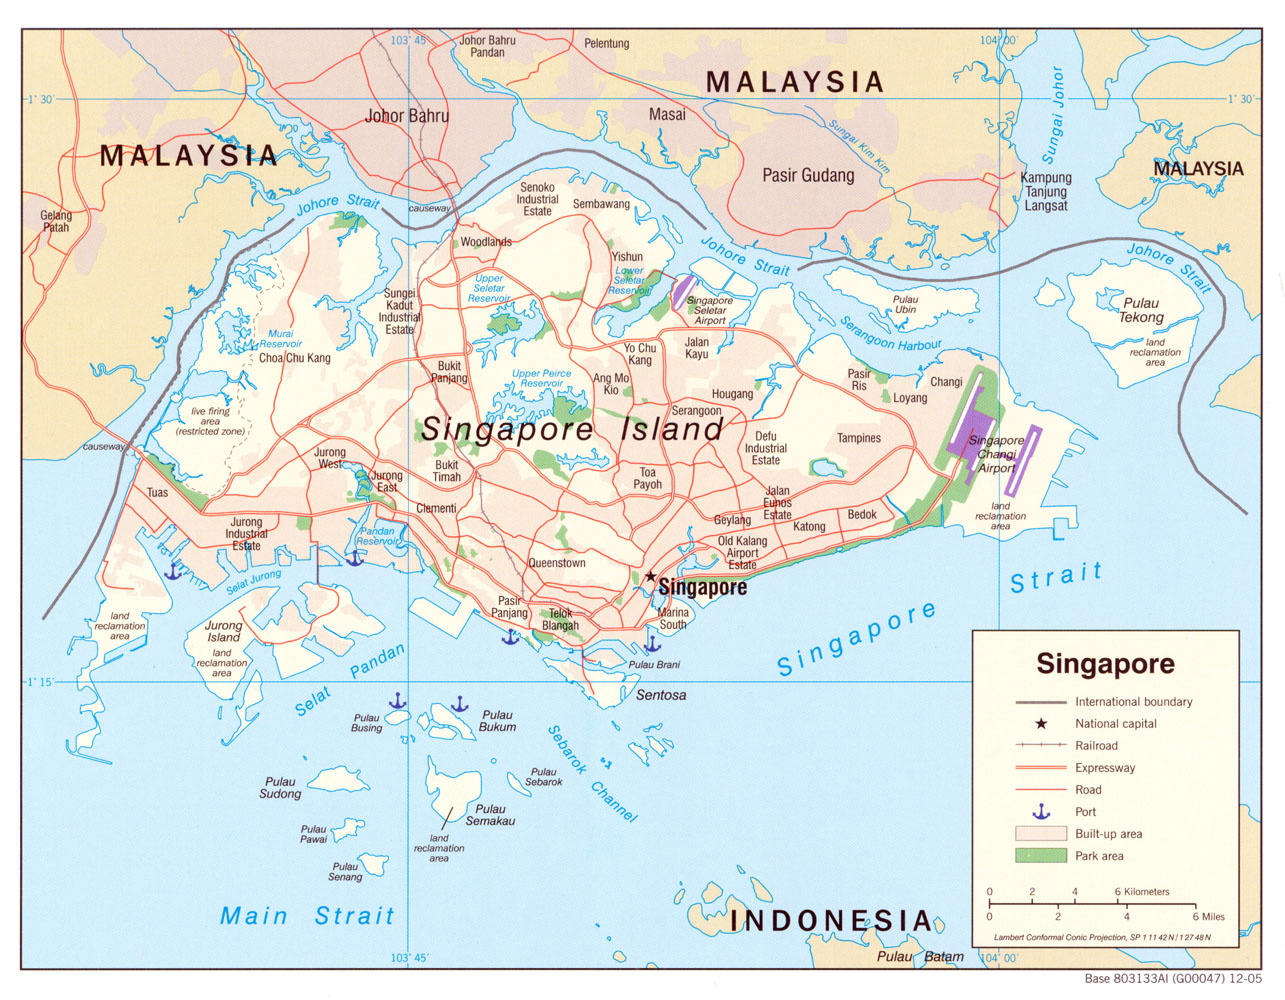 Map Of Asia Showing Singapore.Singapore Maps Perry Castaneda Map Collection Ut Library Online